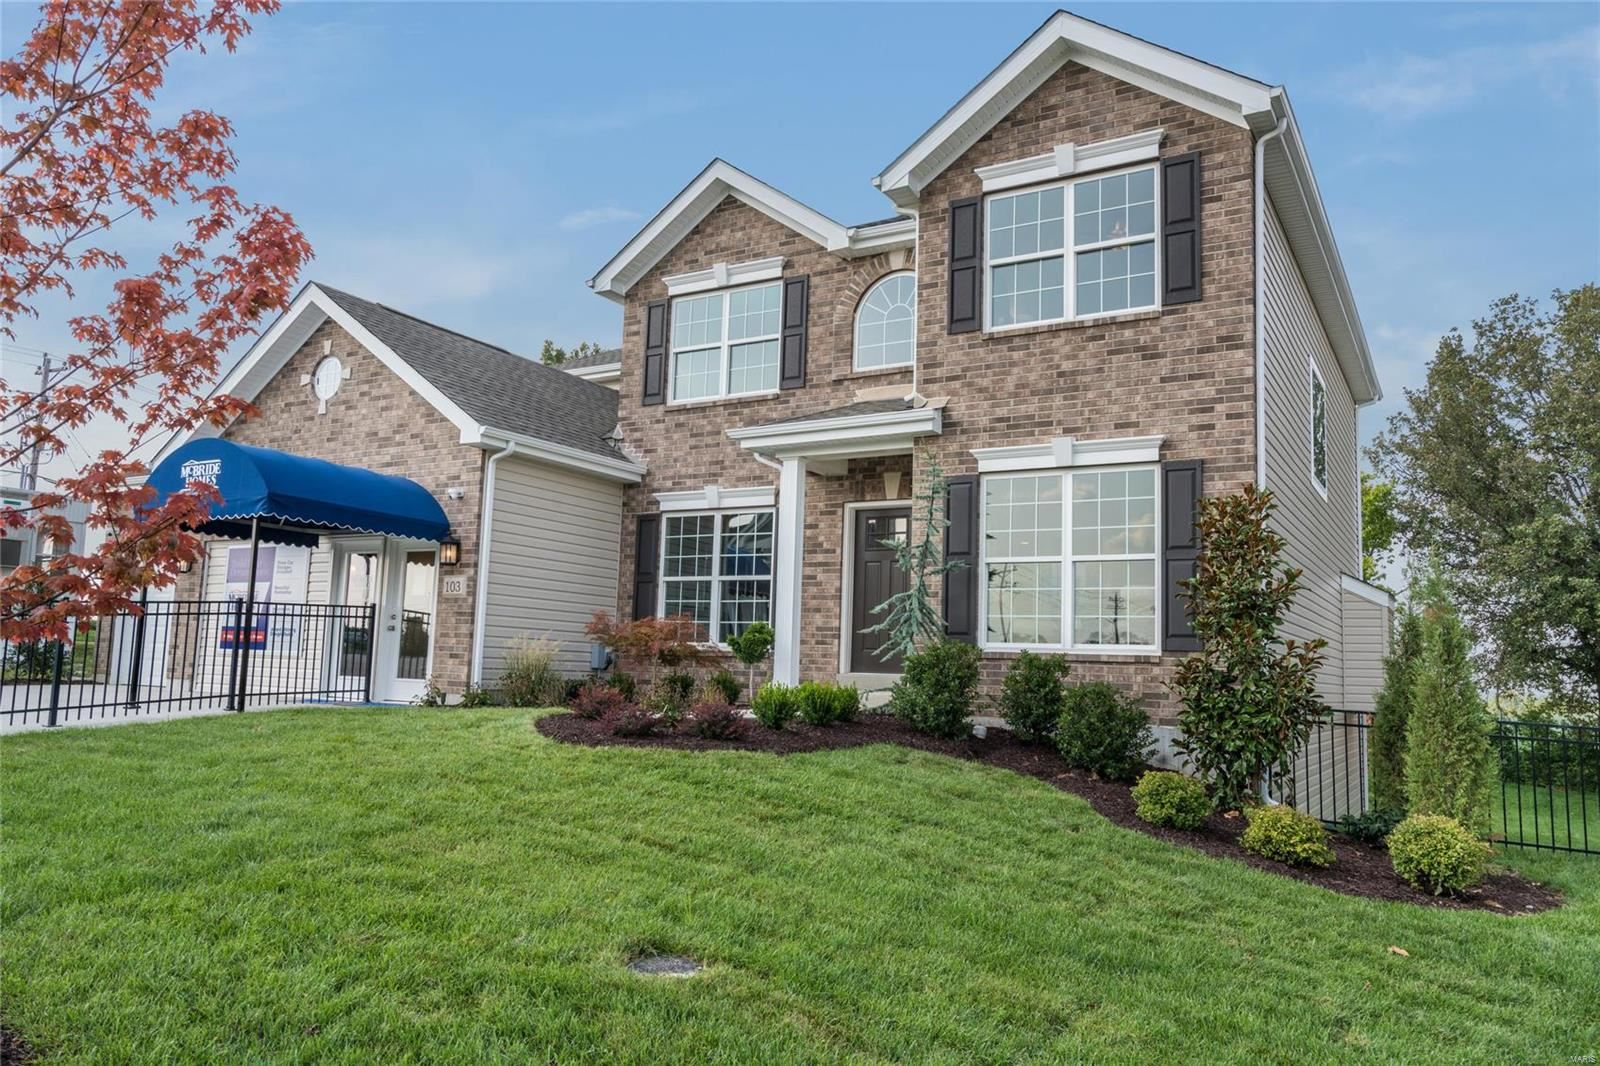 1 Sequoia at Shadow Point, Oakville, MO 63129 - MLS#: 21072407